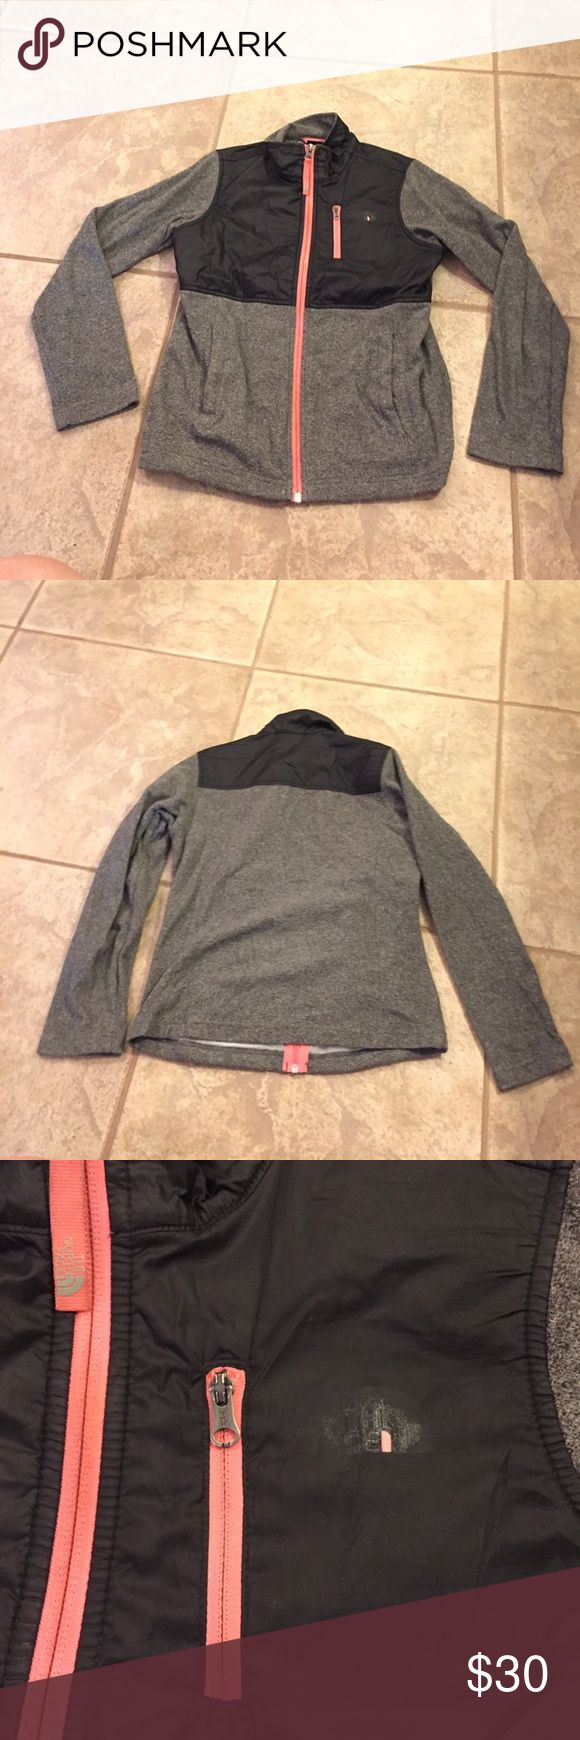 Girls north face fleece Has some signs of wear but overall in great condition! North Face Jackets & Coats